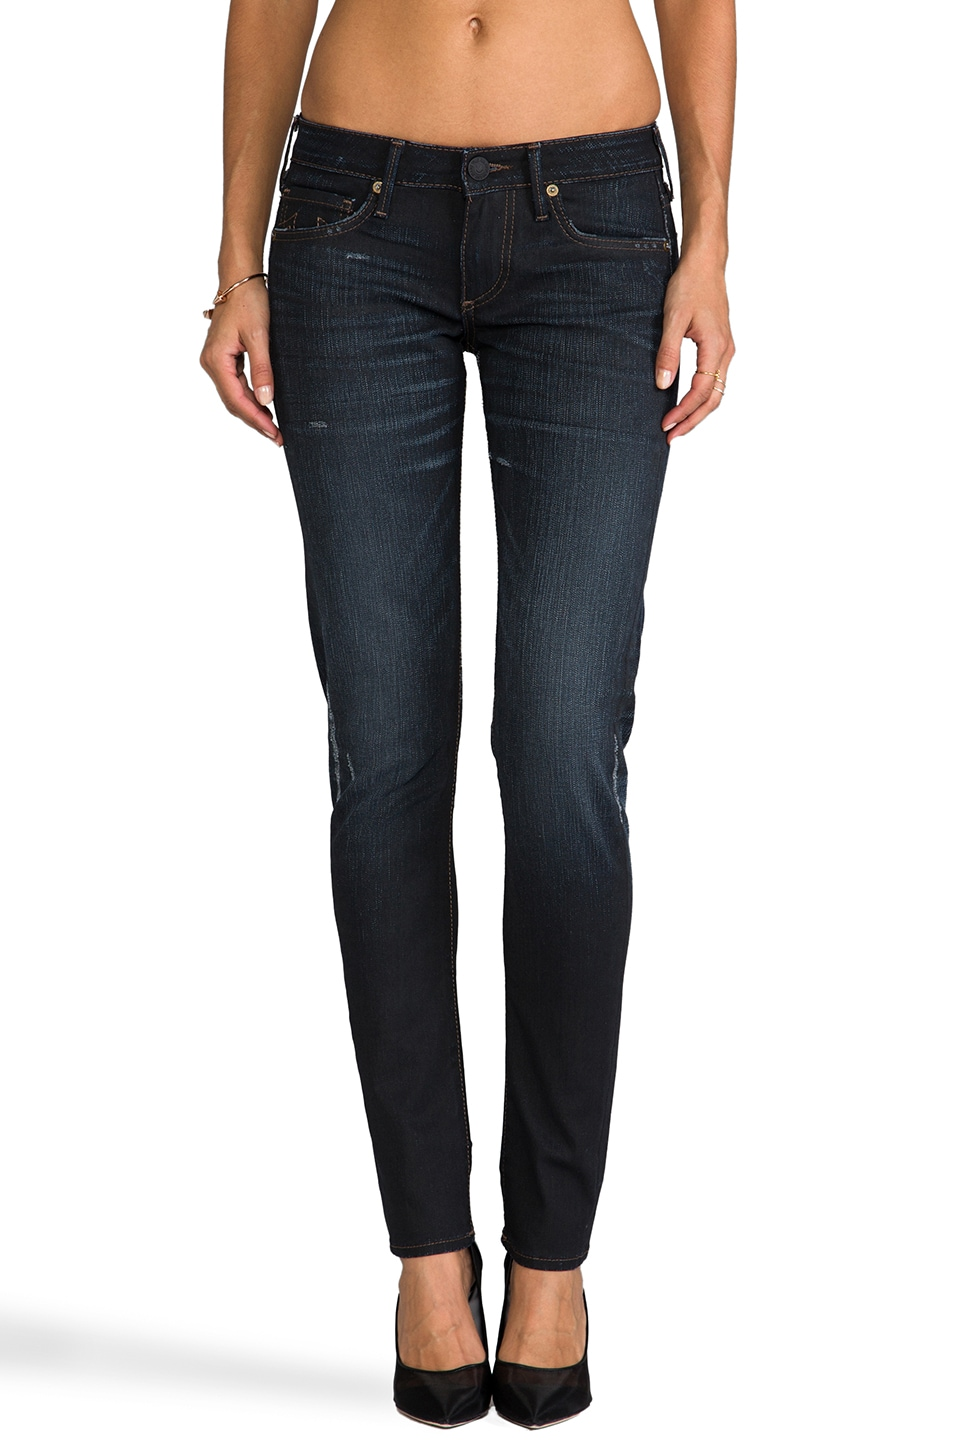 True Religion Jude Super Low Rise Skinny in Asphalt w/ Rips